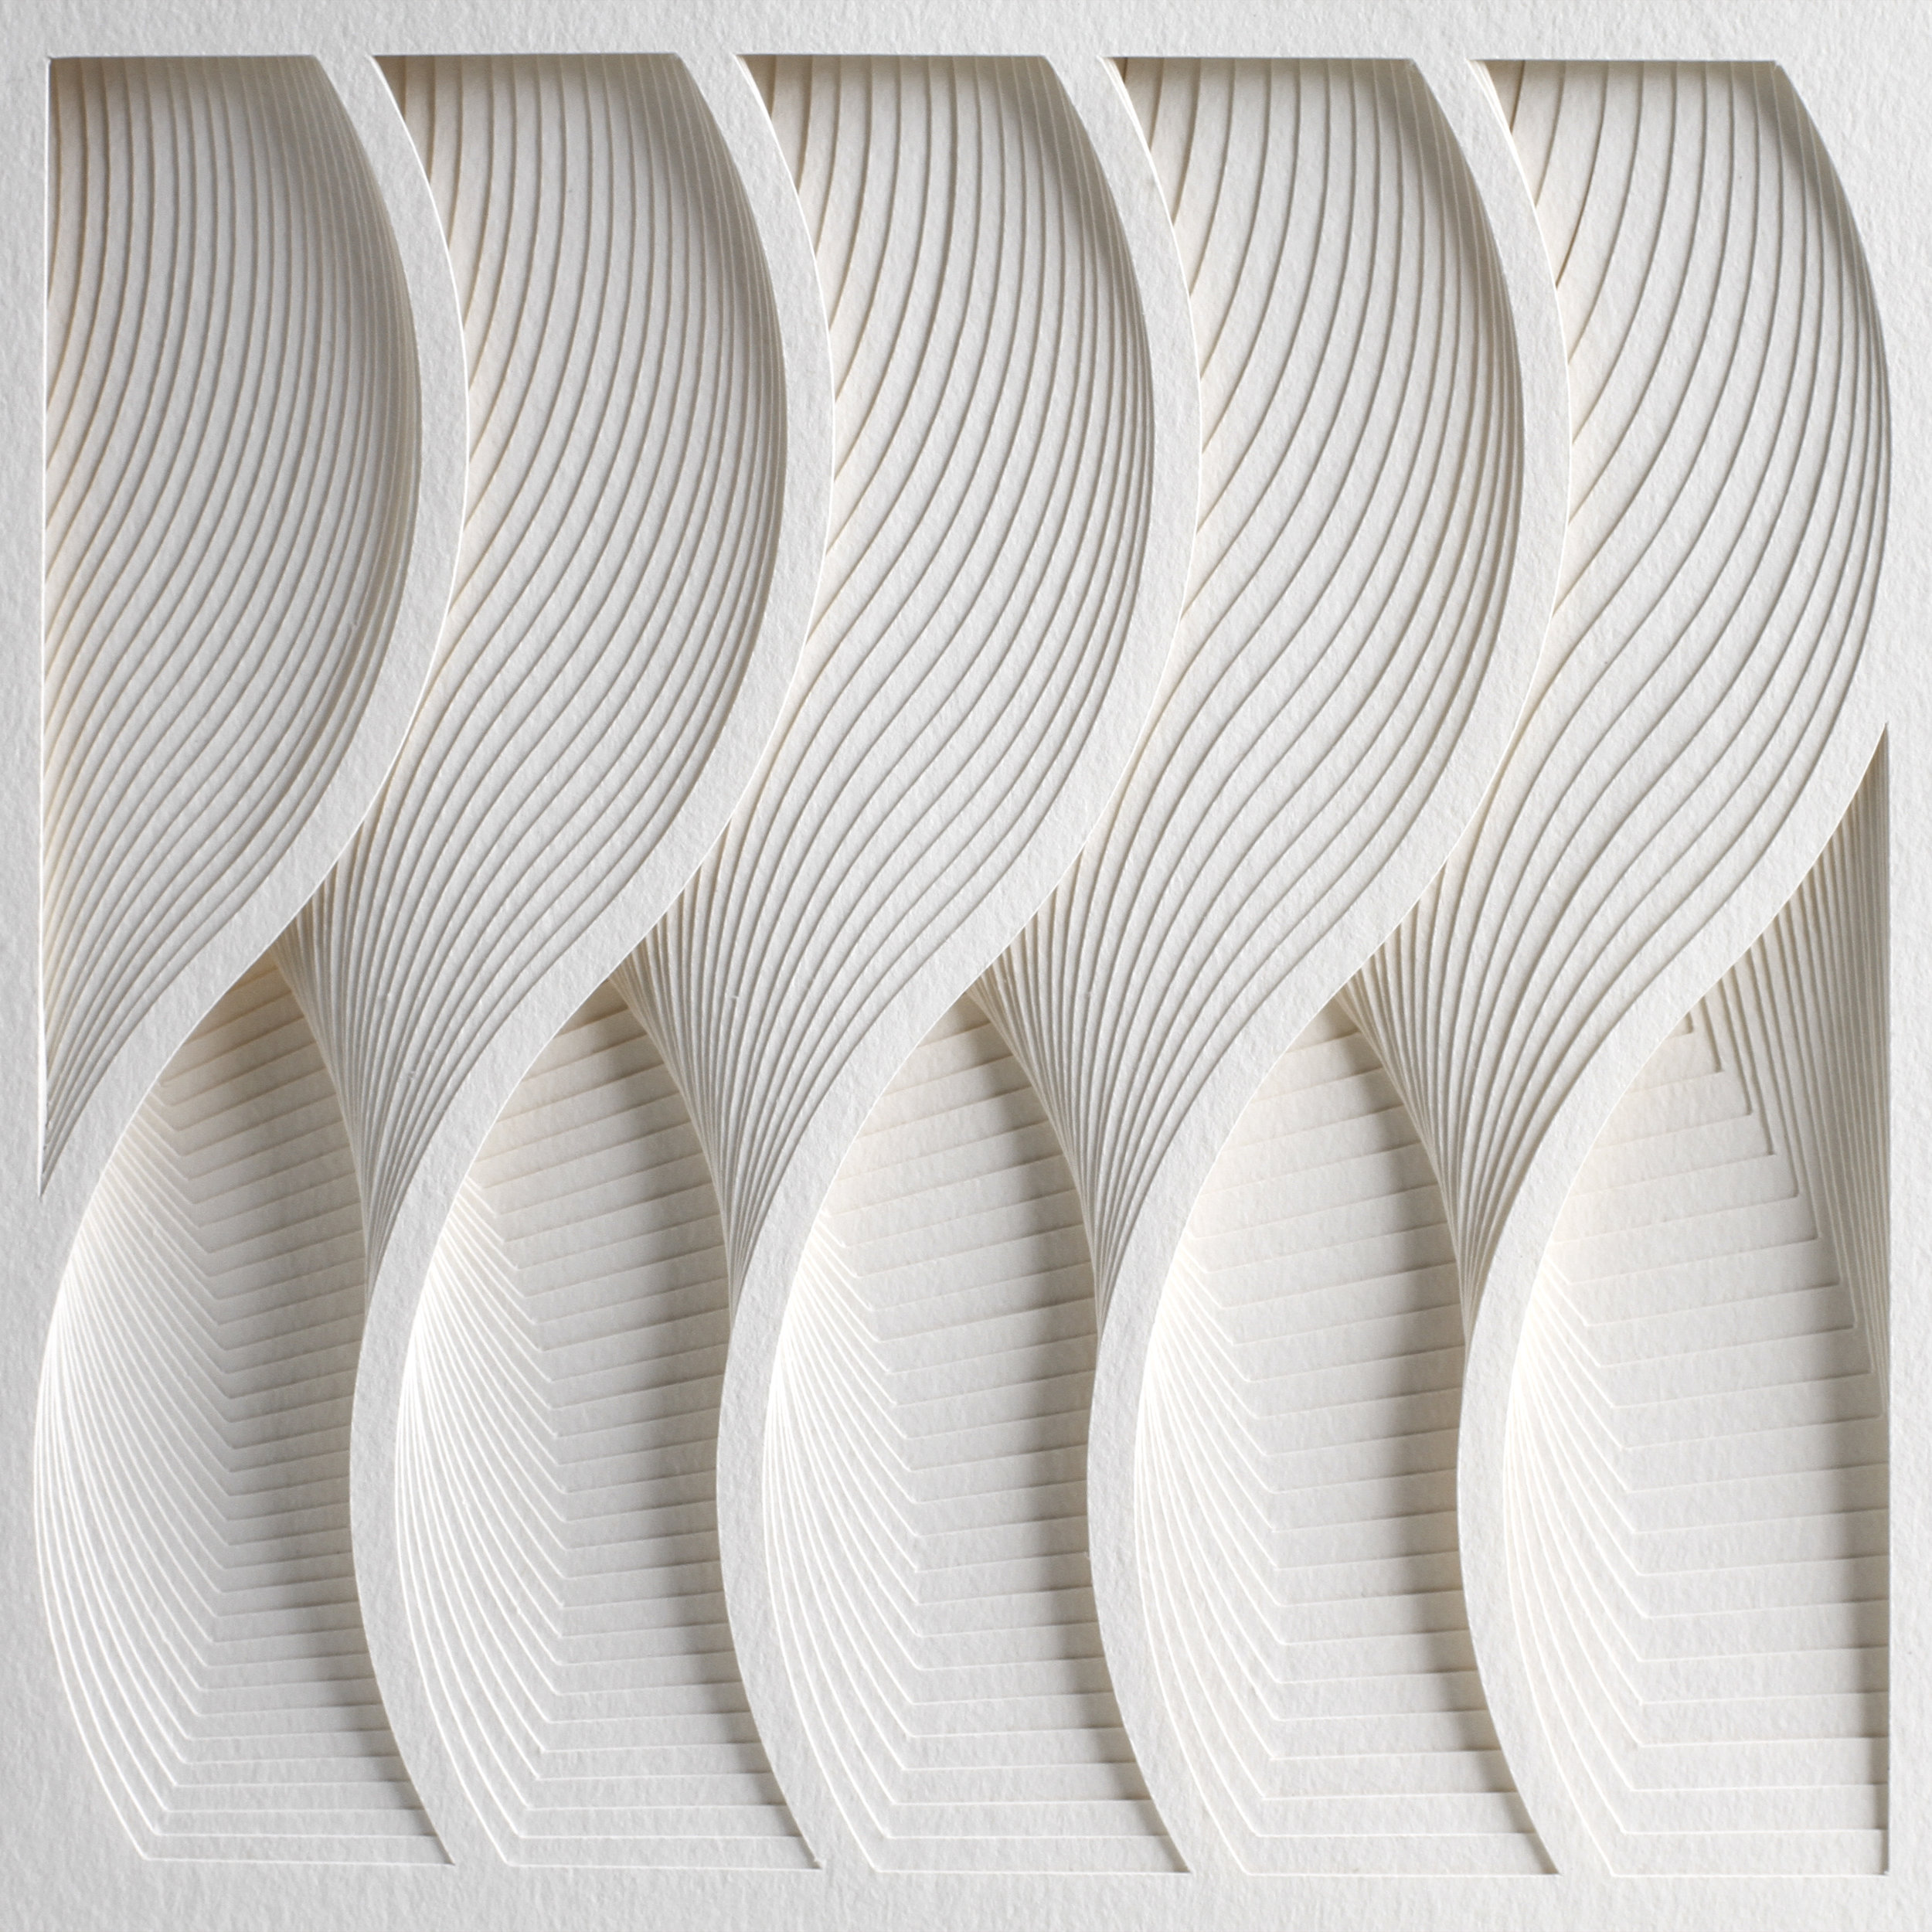 """Process Series 2 - Wave,  Cut and Folded Paper, 35""""H x 27""""W, Photo by Cullen Stephenson"""